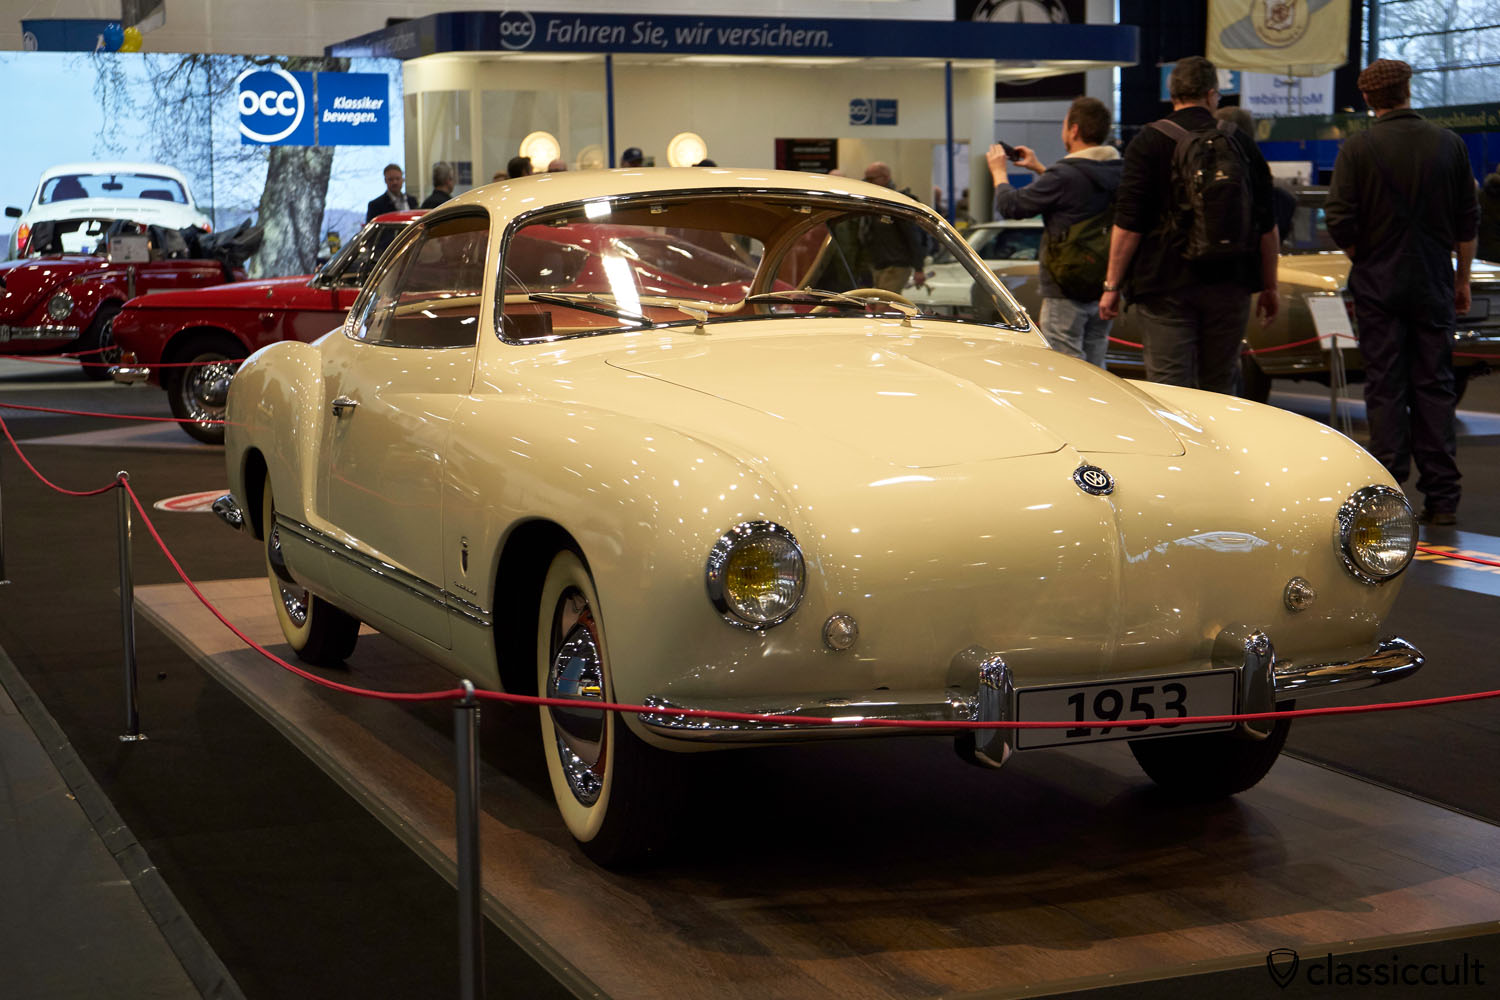 "VW Karmann Ghia 1953, the first Ghia ever, the mothership aka ""Das Urmodell"", Bremen Classic Motorshow, BCM 2017"